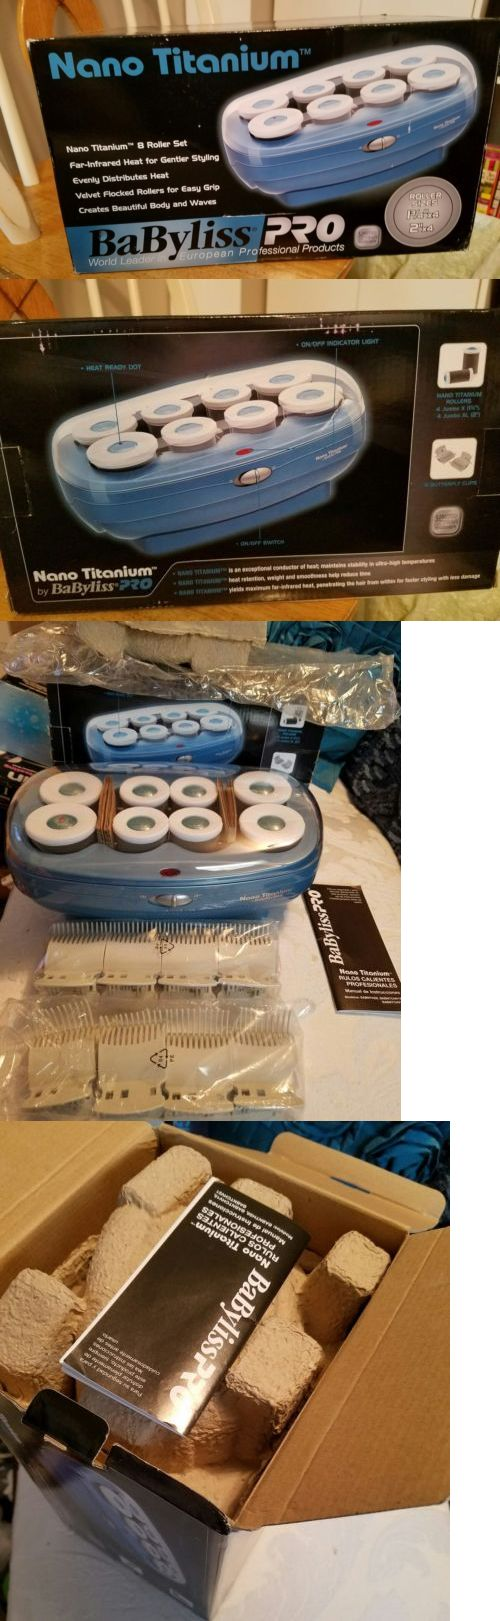 Rollers and Curlers: Babyliss Pro Nano Titanium 8 Roller Set World Leader In European Prof.Products -> BUY IT NOW ONLY: $30 on eBay!